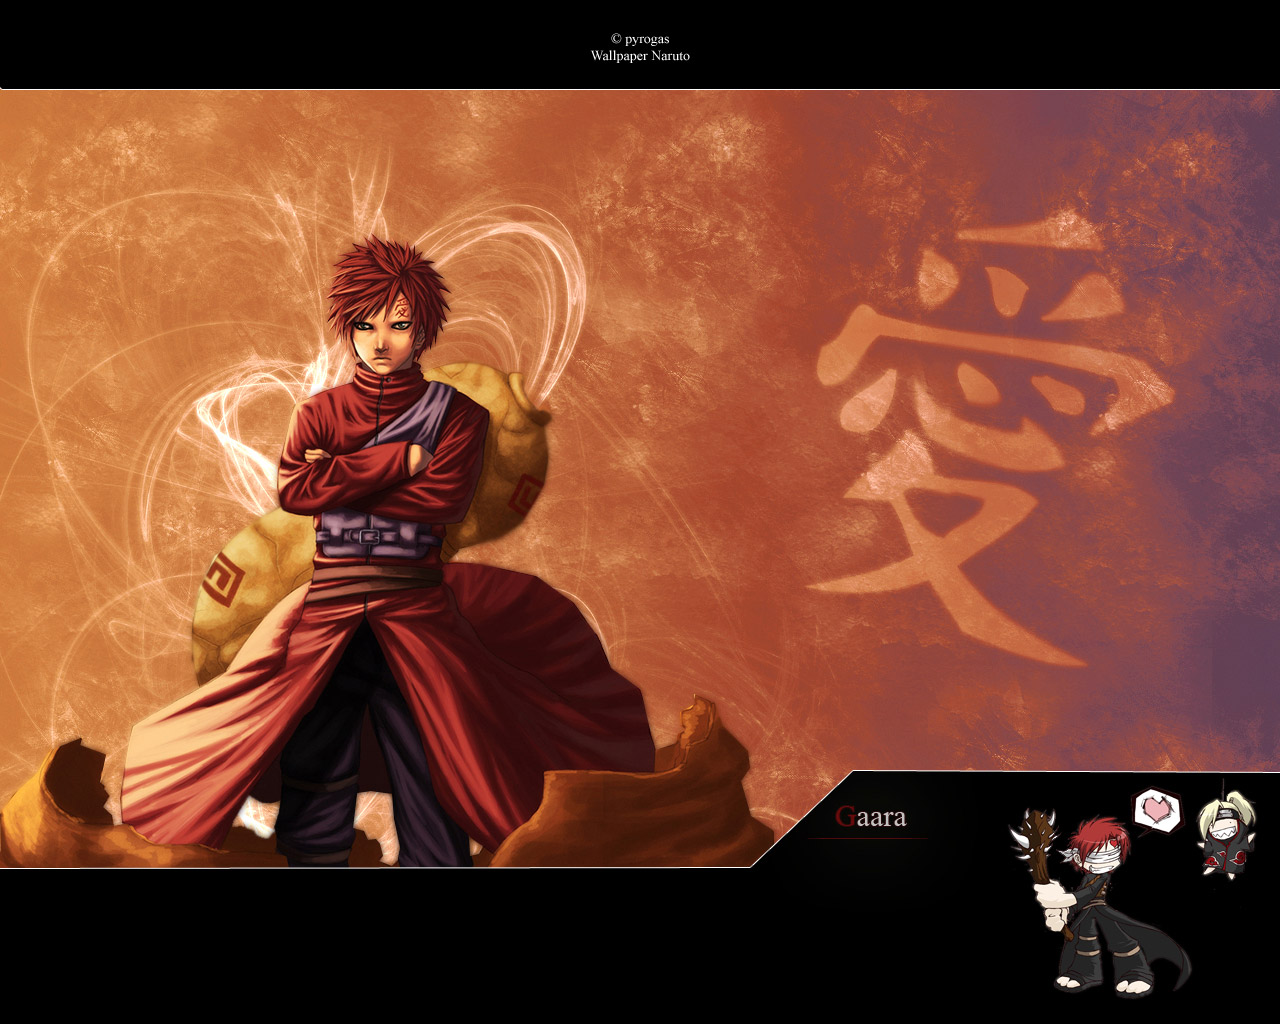 naruto and gaara wallpaper - photo #17